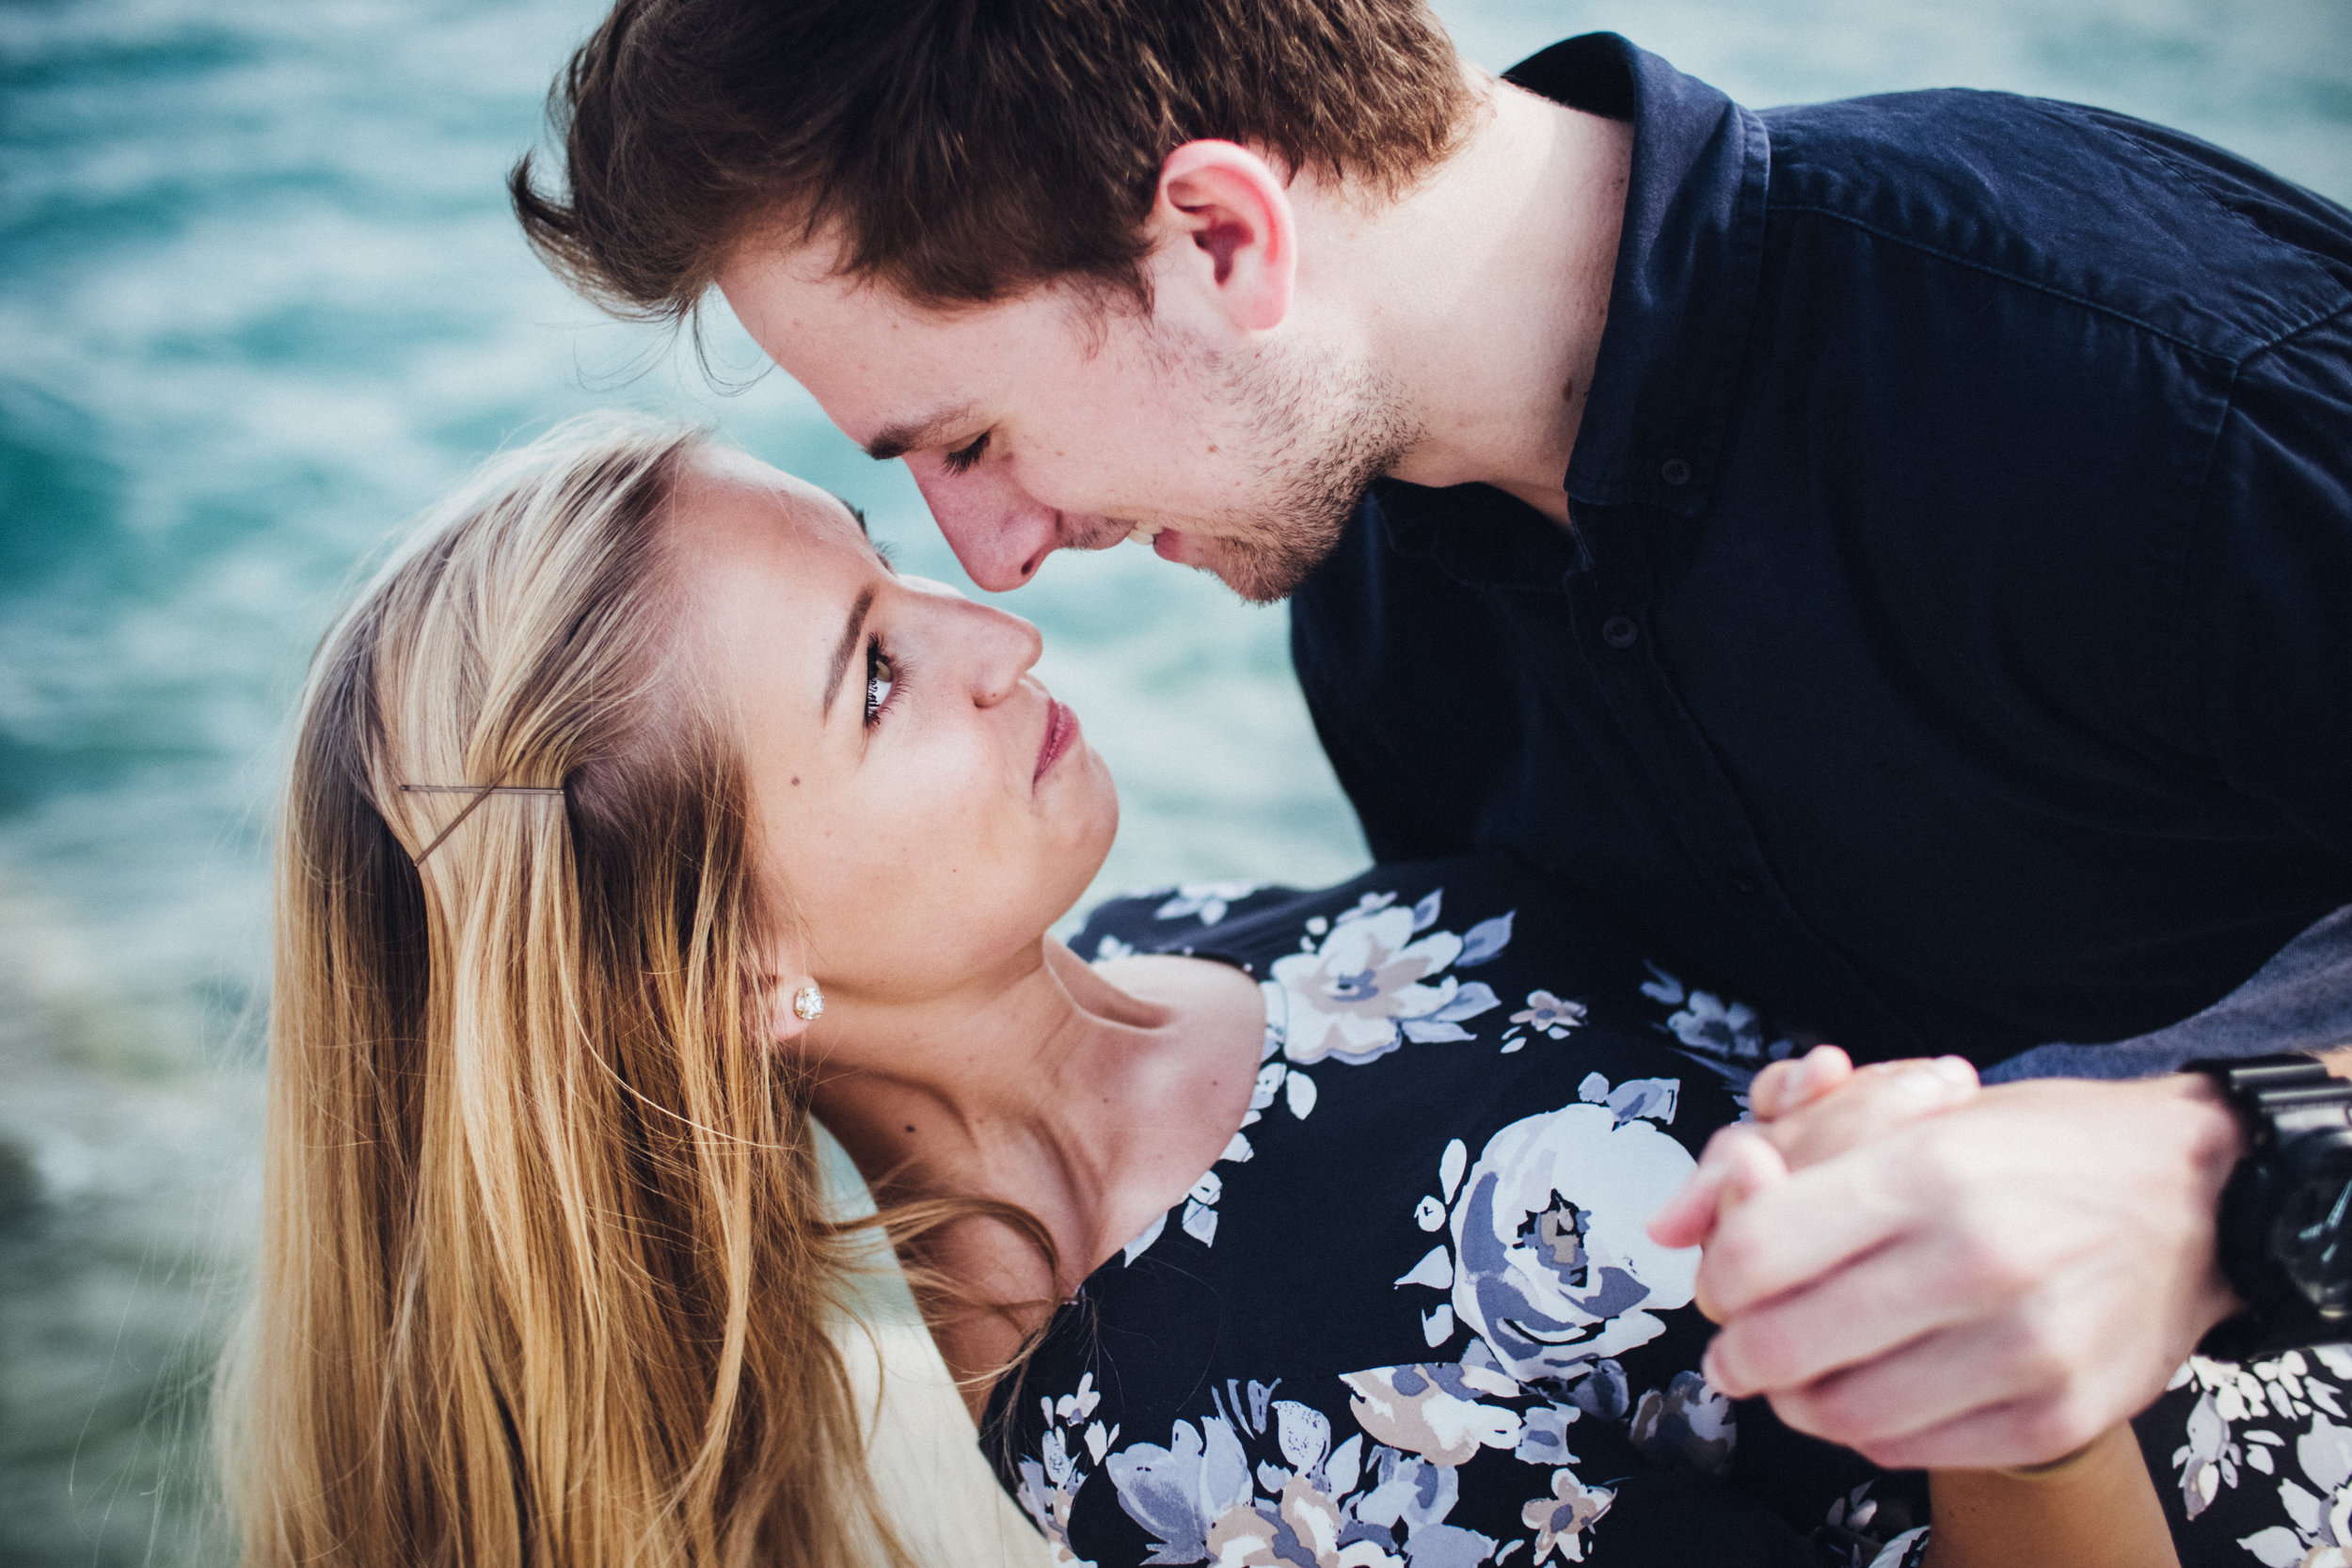 engagement-photography-photographer-photographers-award-winning-shadow-shine-pictures-wedding-photos-destination-chicago